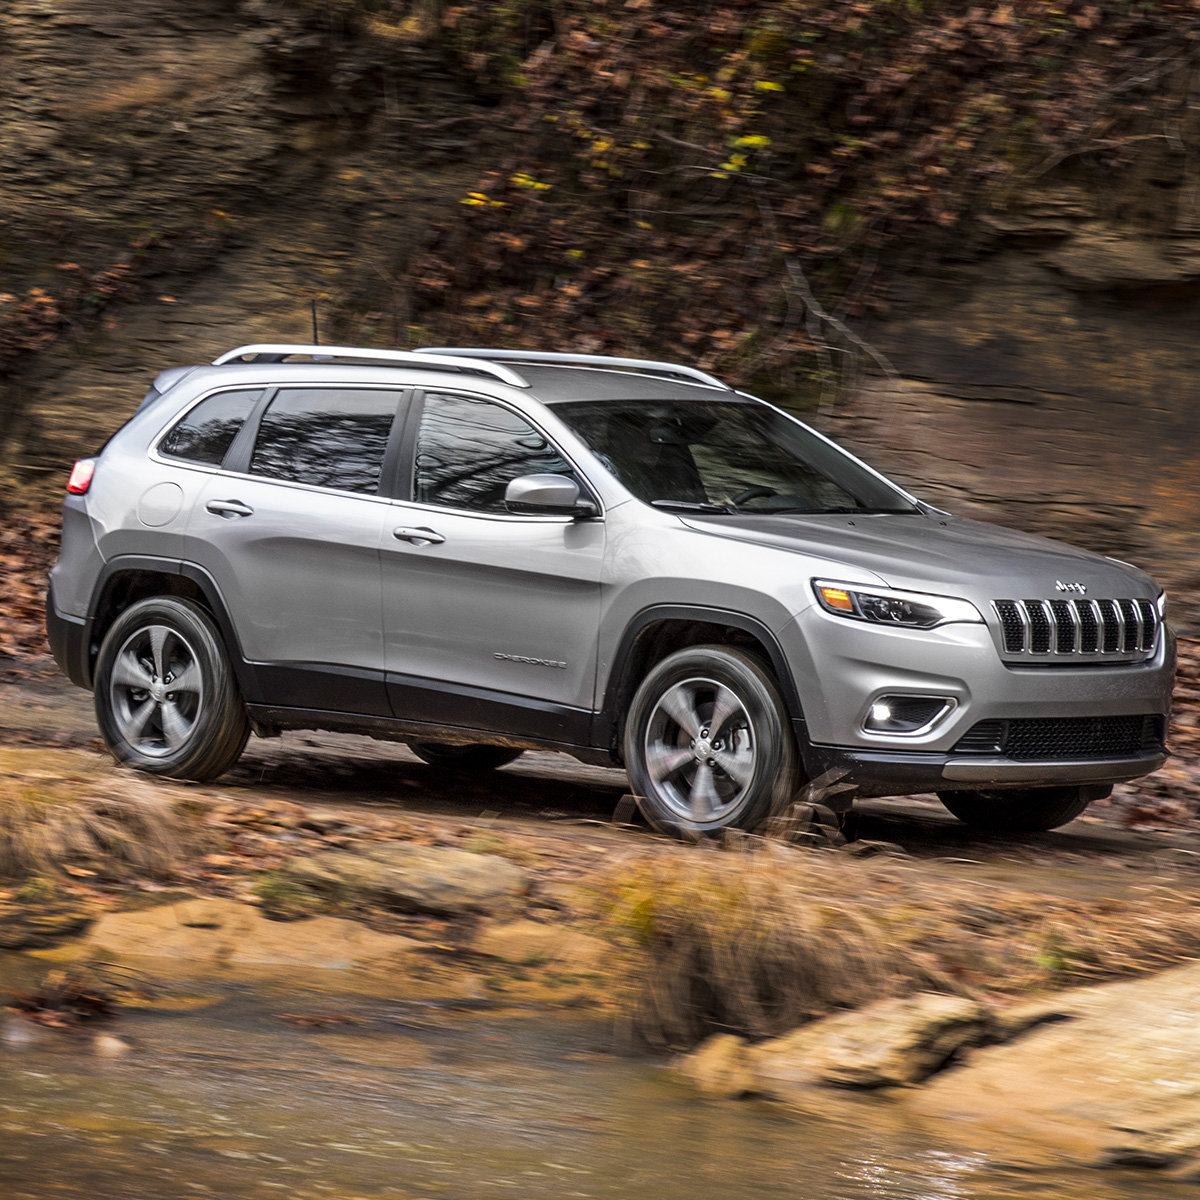 side view of silver jeep cherokee vehicle cruising on mountain terrain